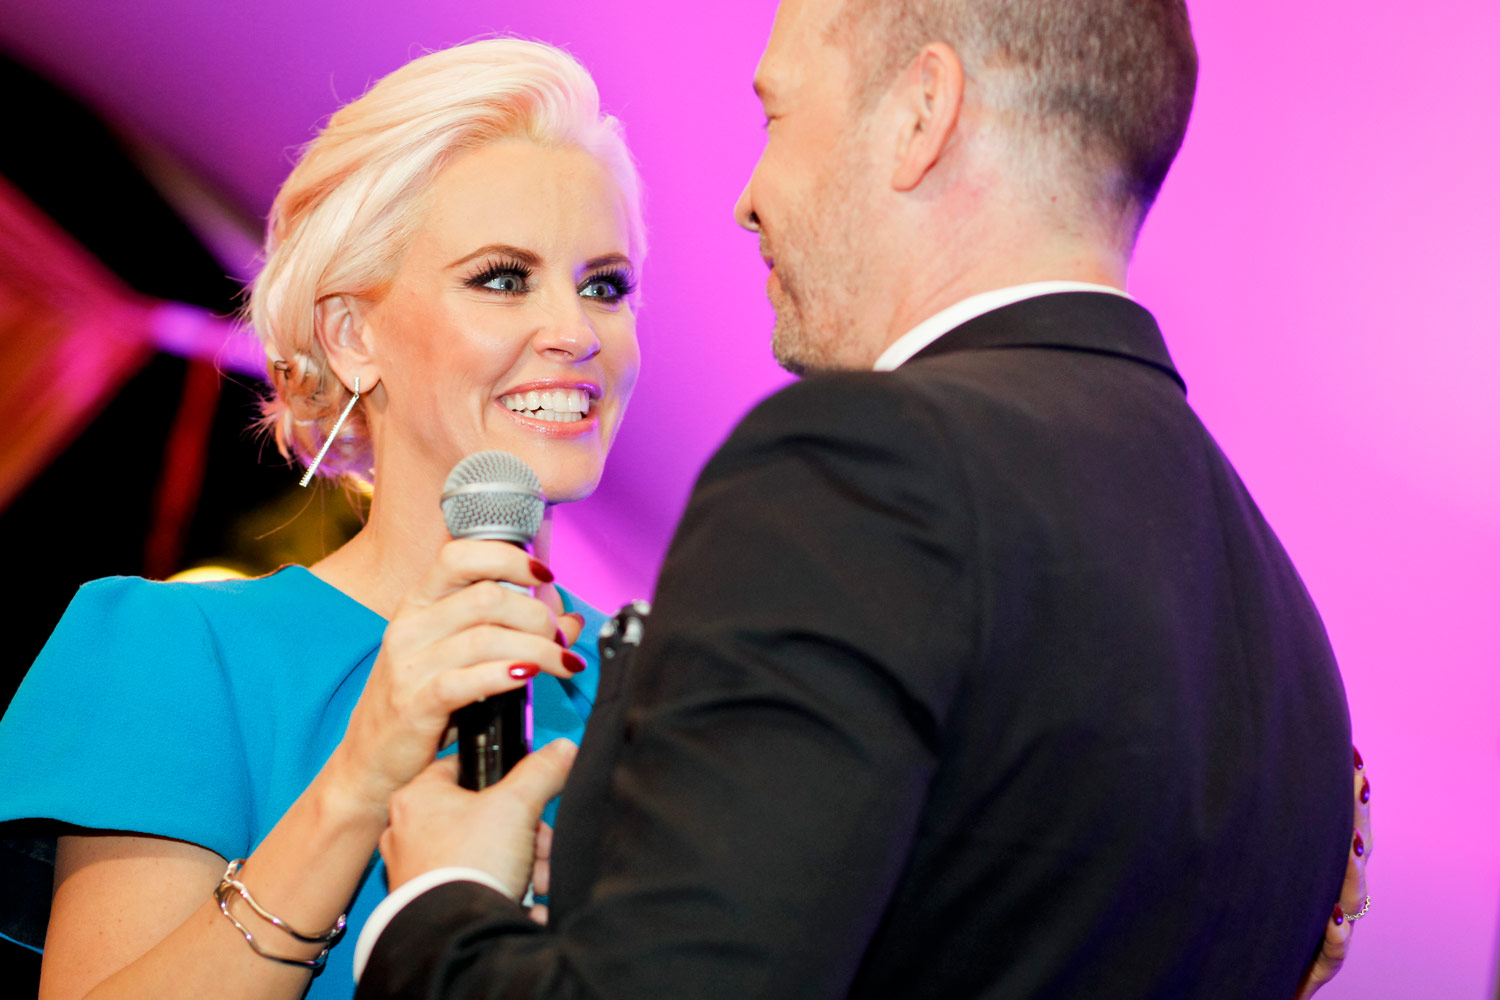 event-photographer-madison-wi-autism-ruthie-hauge-generation-rescue-night-of-hope-oscar-swan-jenny-mccarthy-donnie-wahlberg-22.jpg